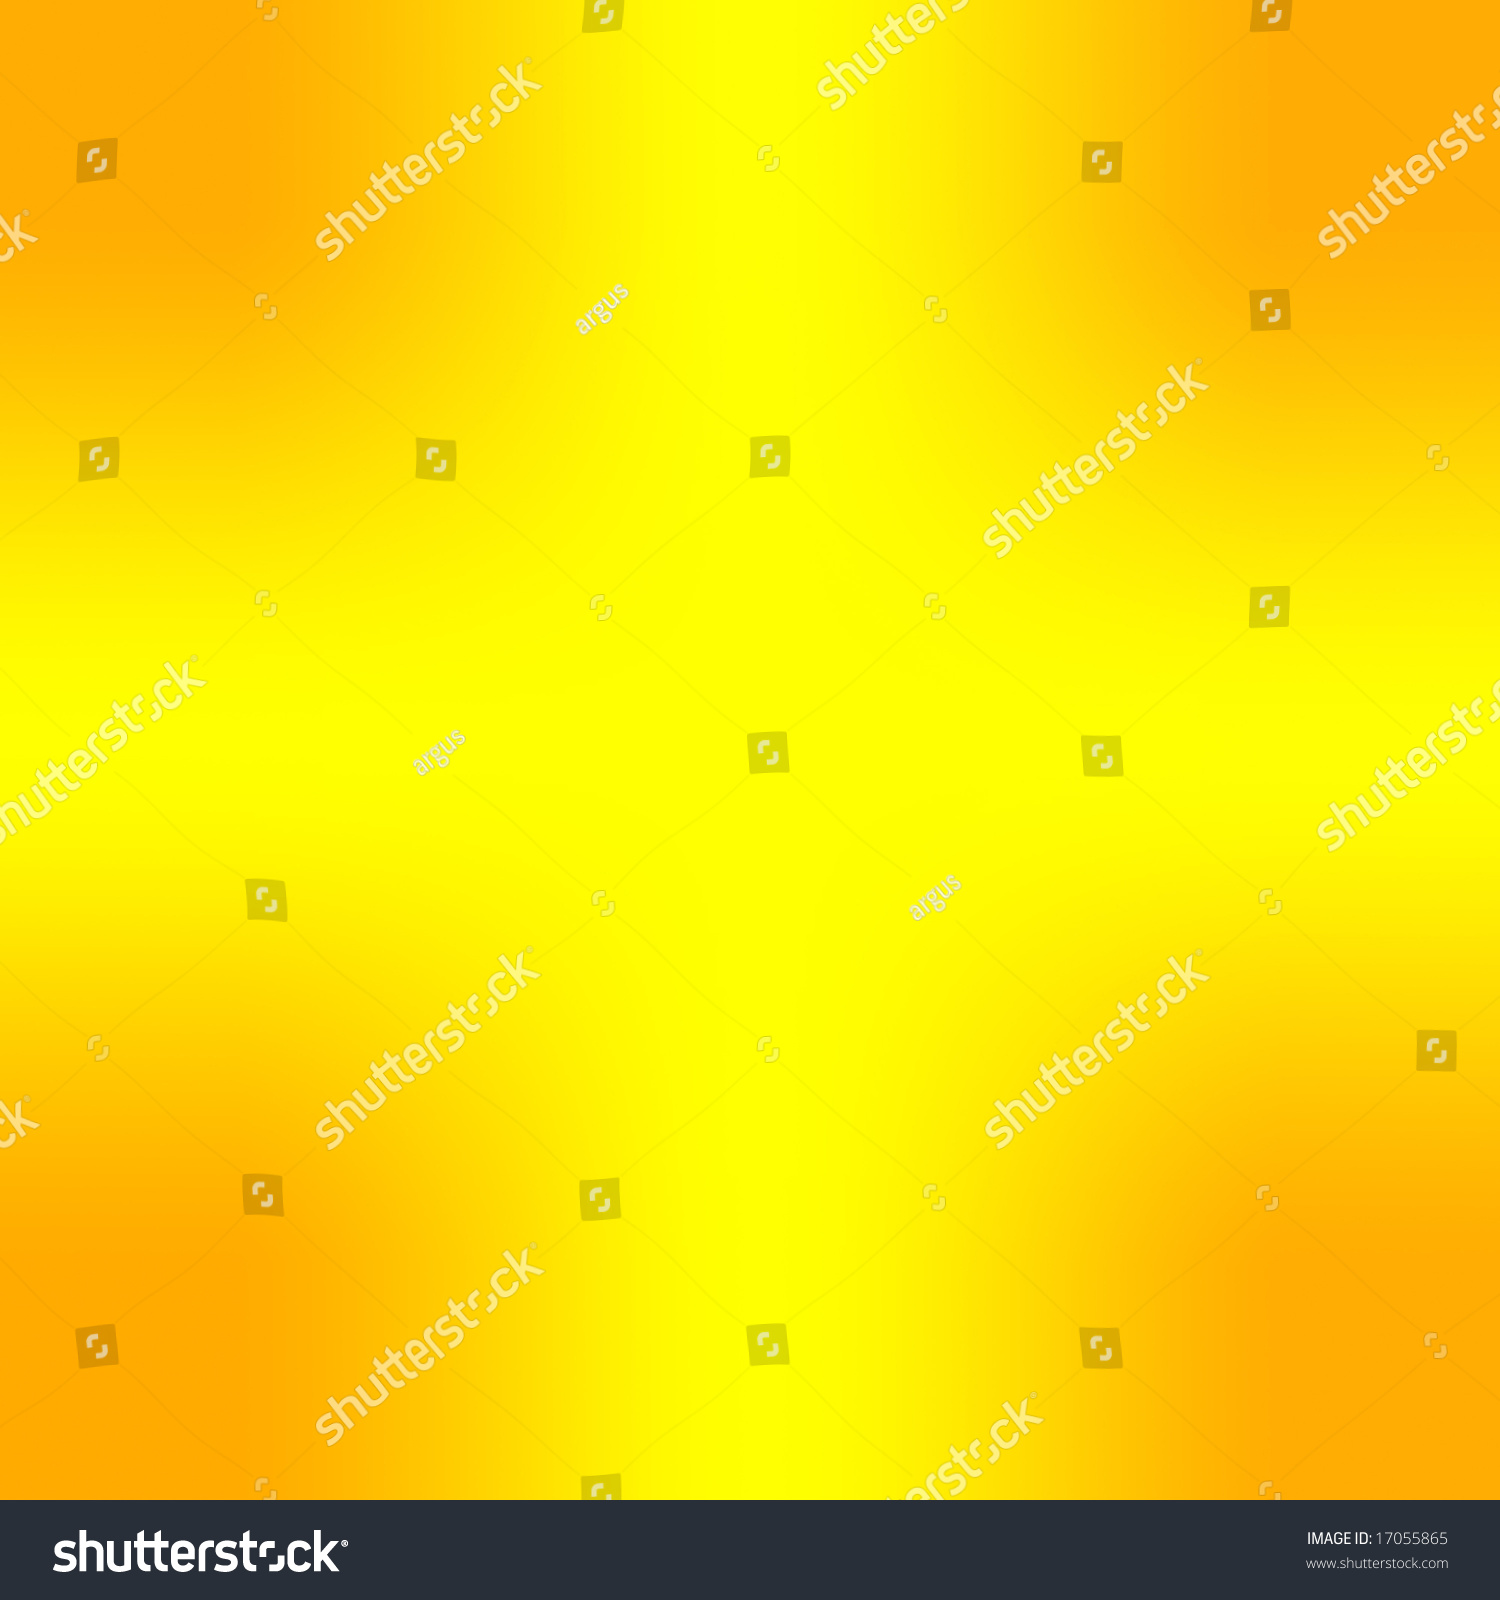 Different Shades Of Orange Abstract Background Different Shades Yellow Orange Stock